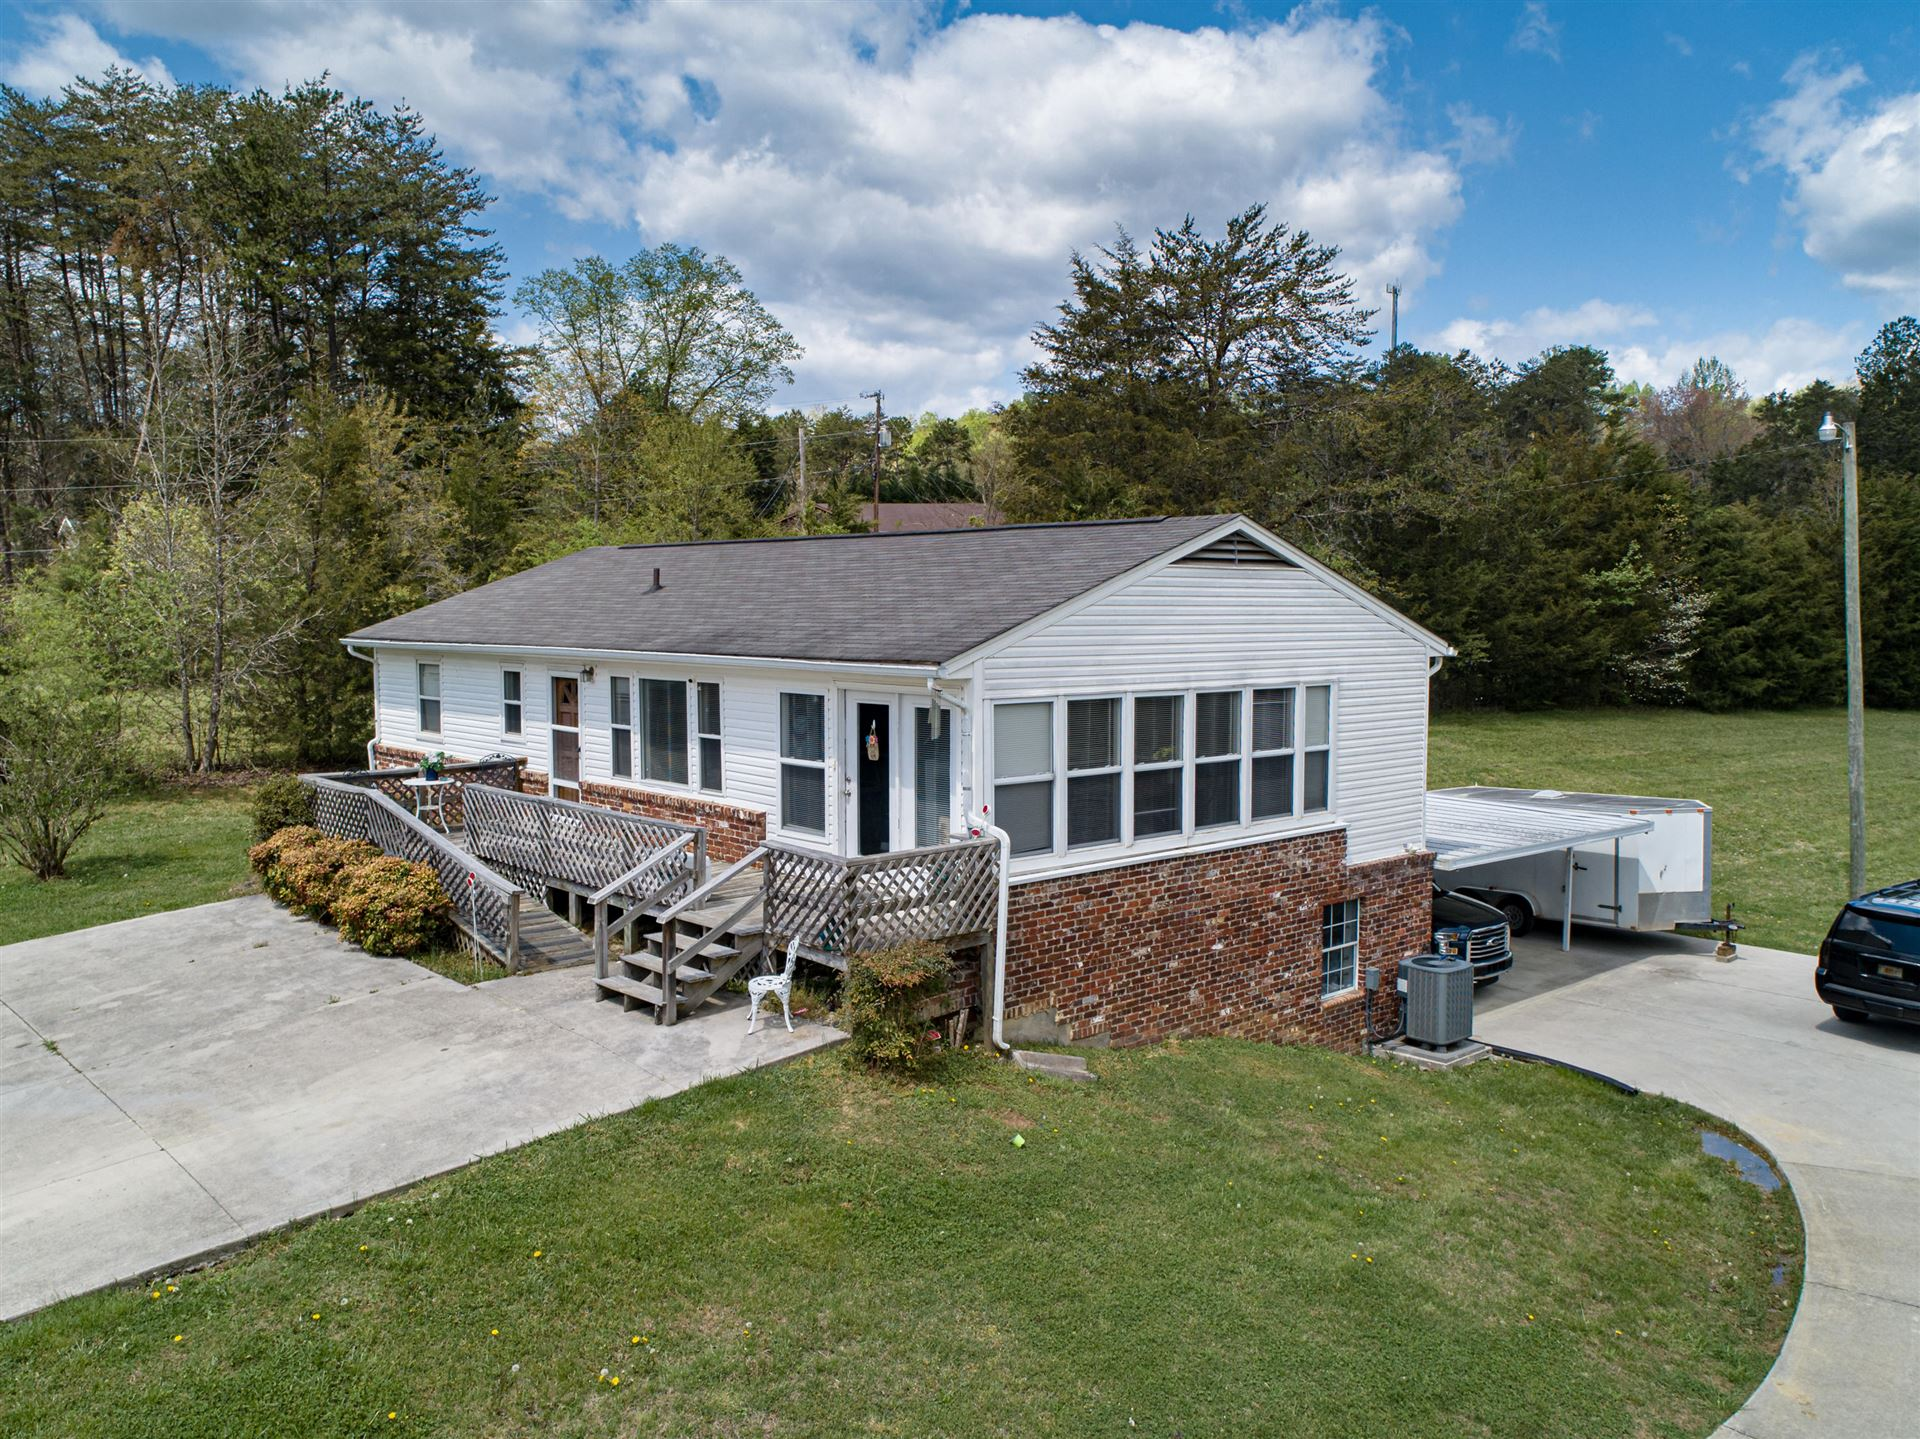 Photo of 1530 Pine Forest Way, Knoxville, TN 37914 (MLS # 1149541)